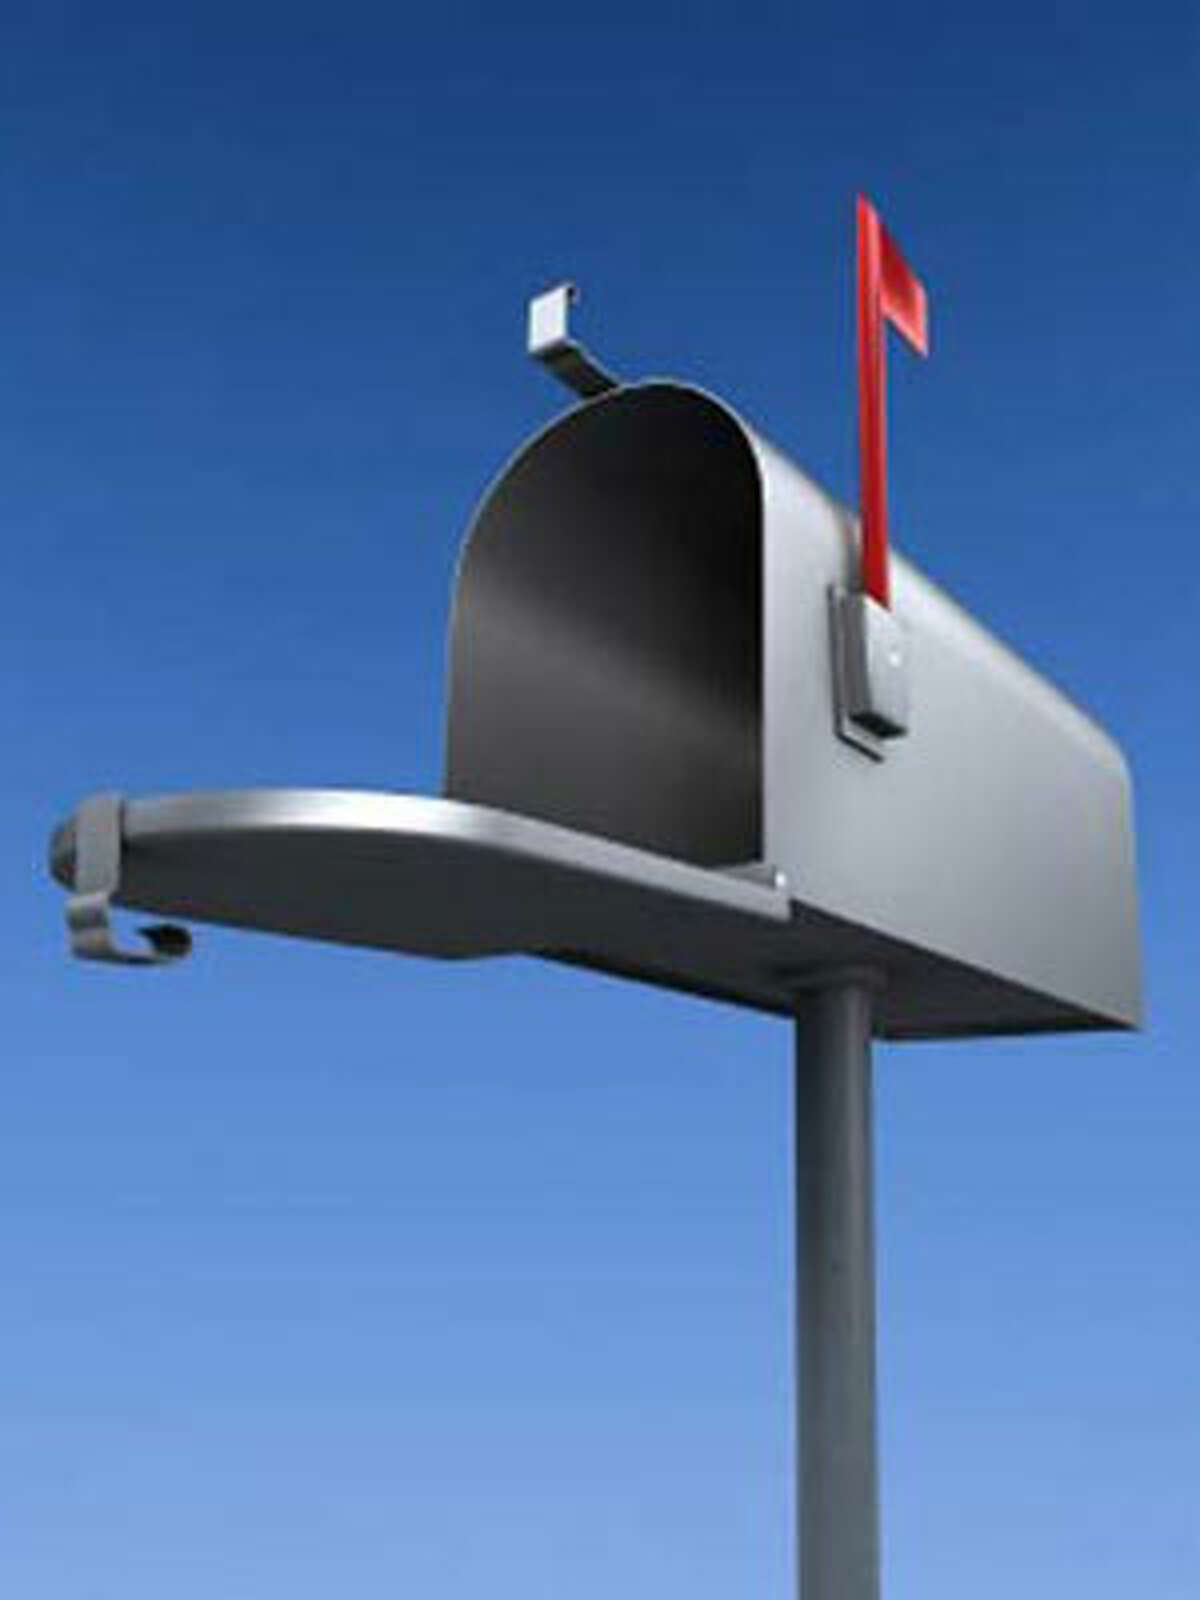 A 95 thousand dollar junk mail check changed Patrick Combs life. Money saving tips from Twiter users >>>